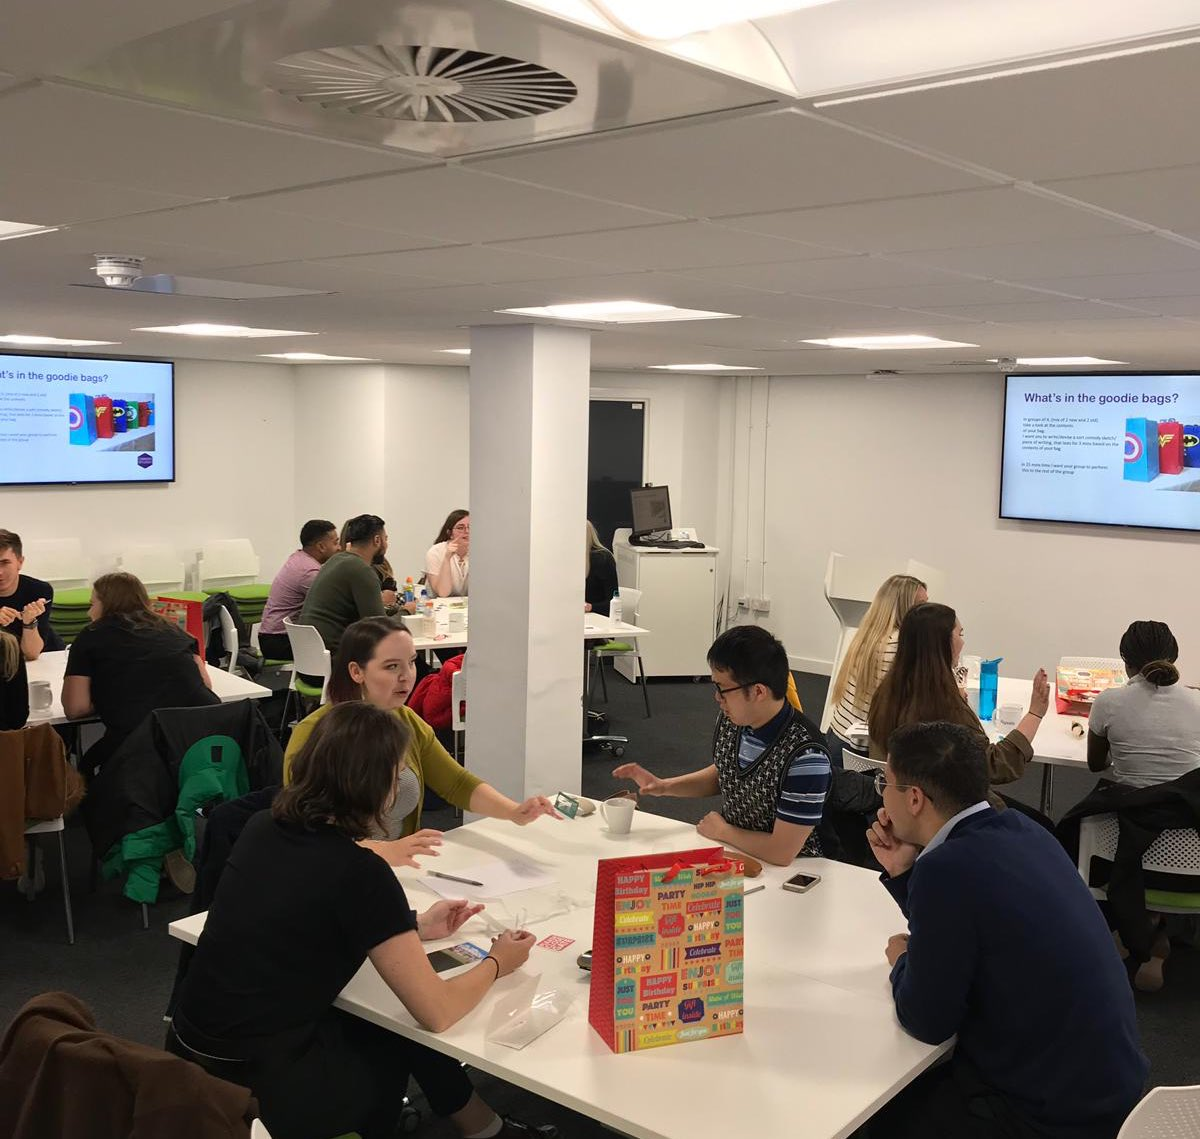 Excited to welcome our new @livuni #CareerCoaches to the team for their first day of training today!